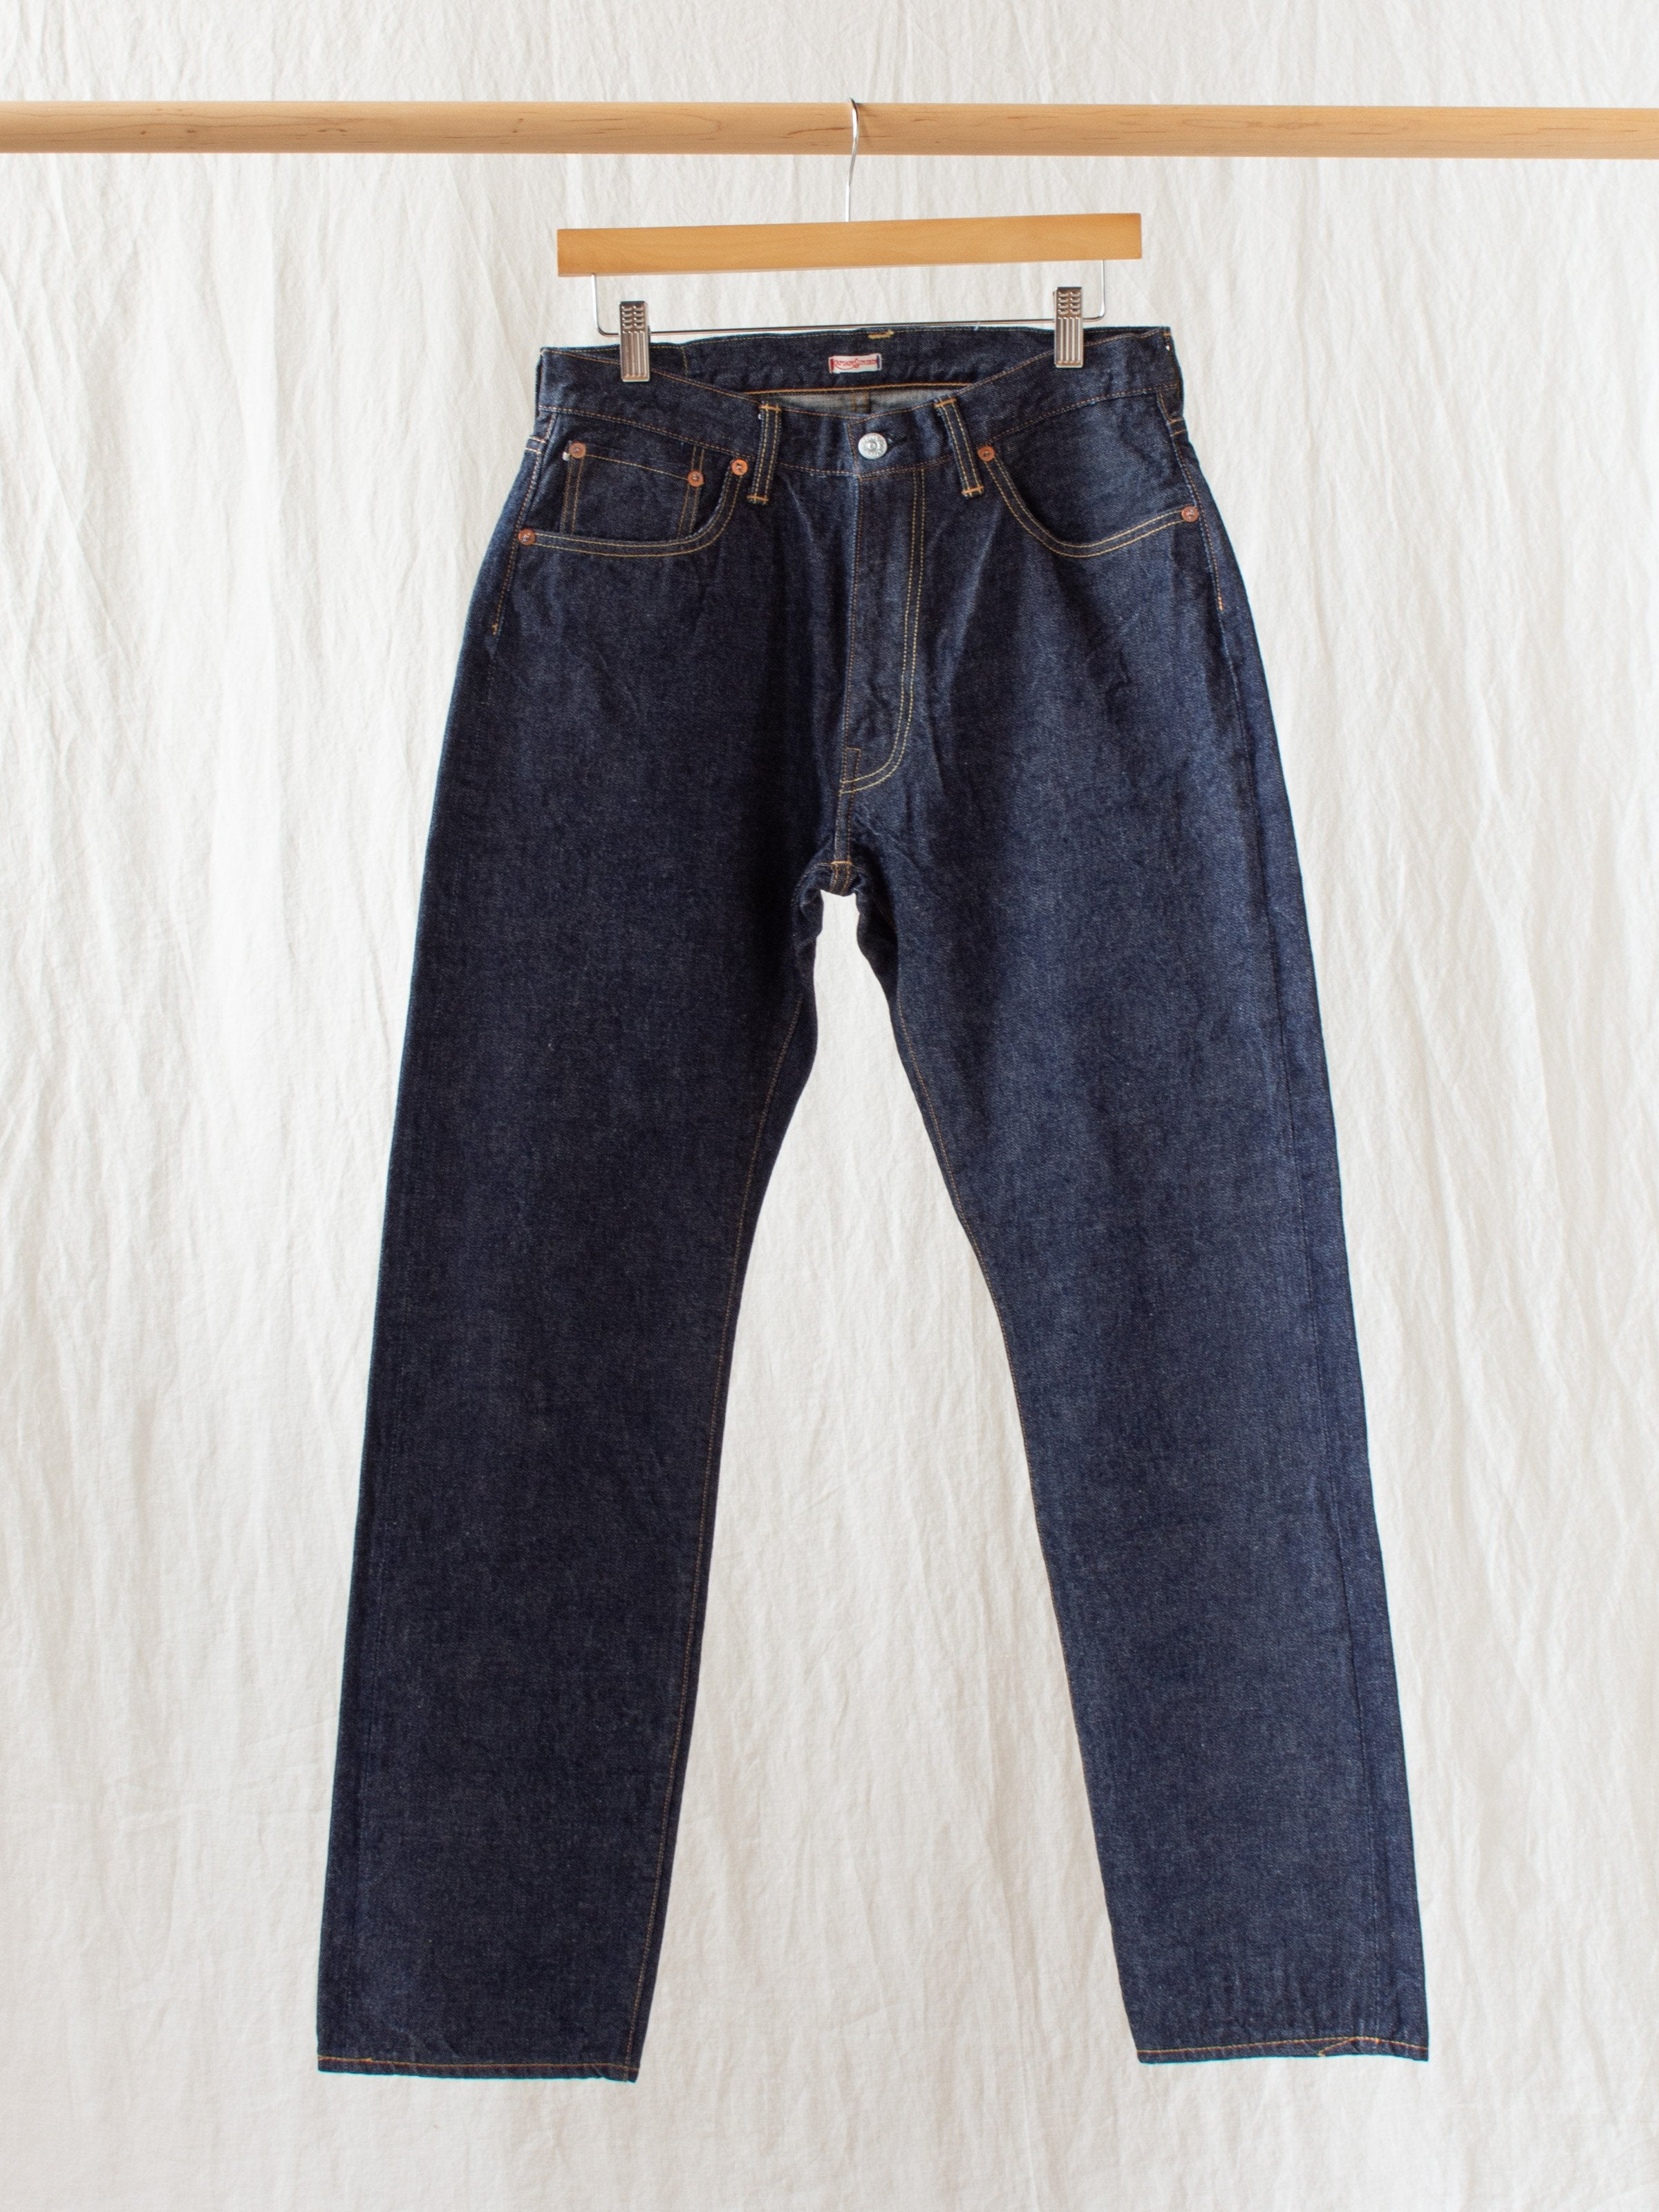 Namu Shop - Kaptain Sunshine East Coast Fit Denim Pants (re-stocked)